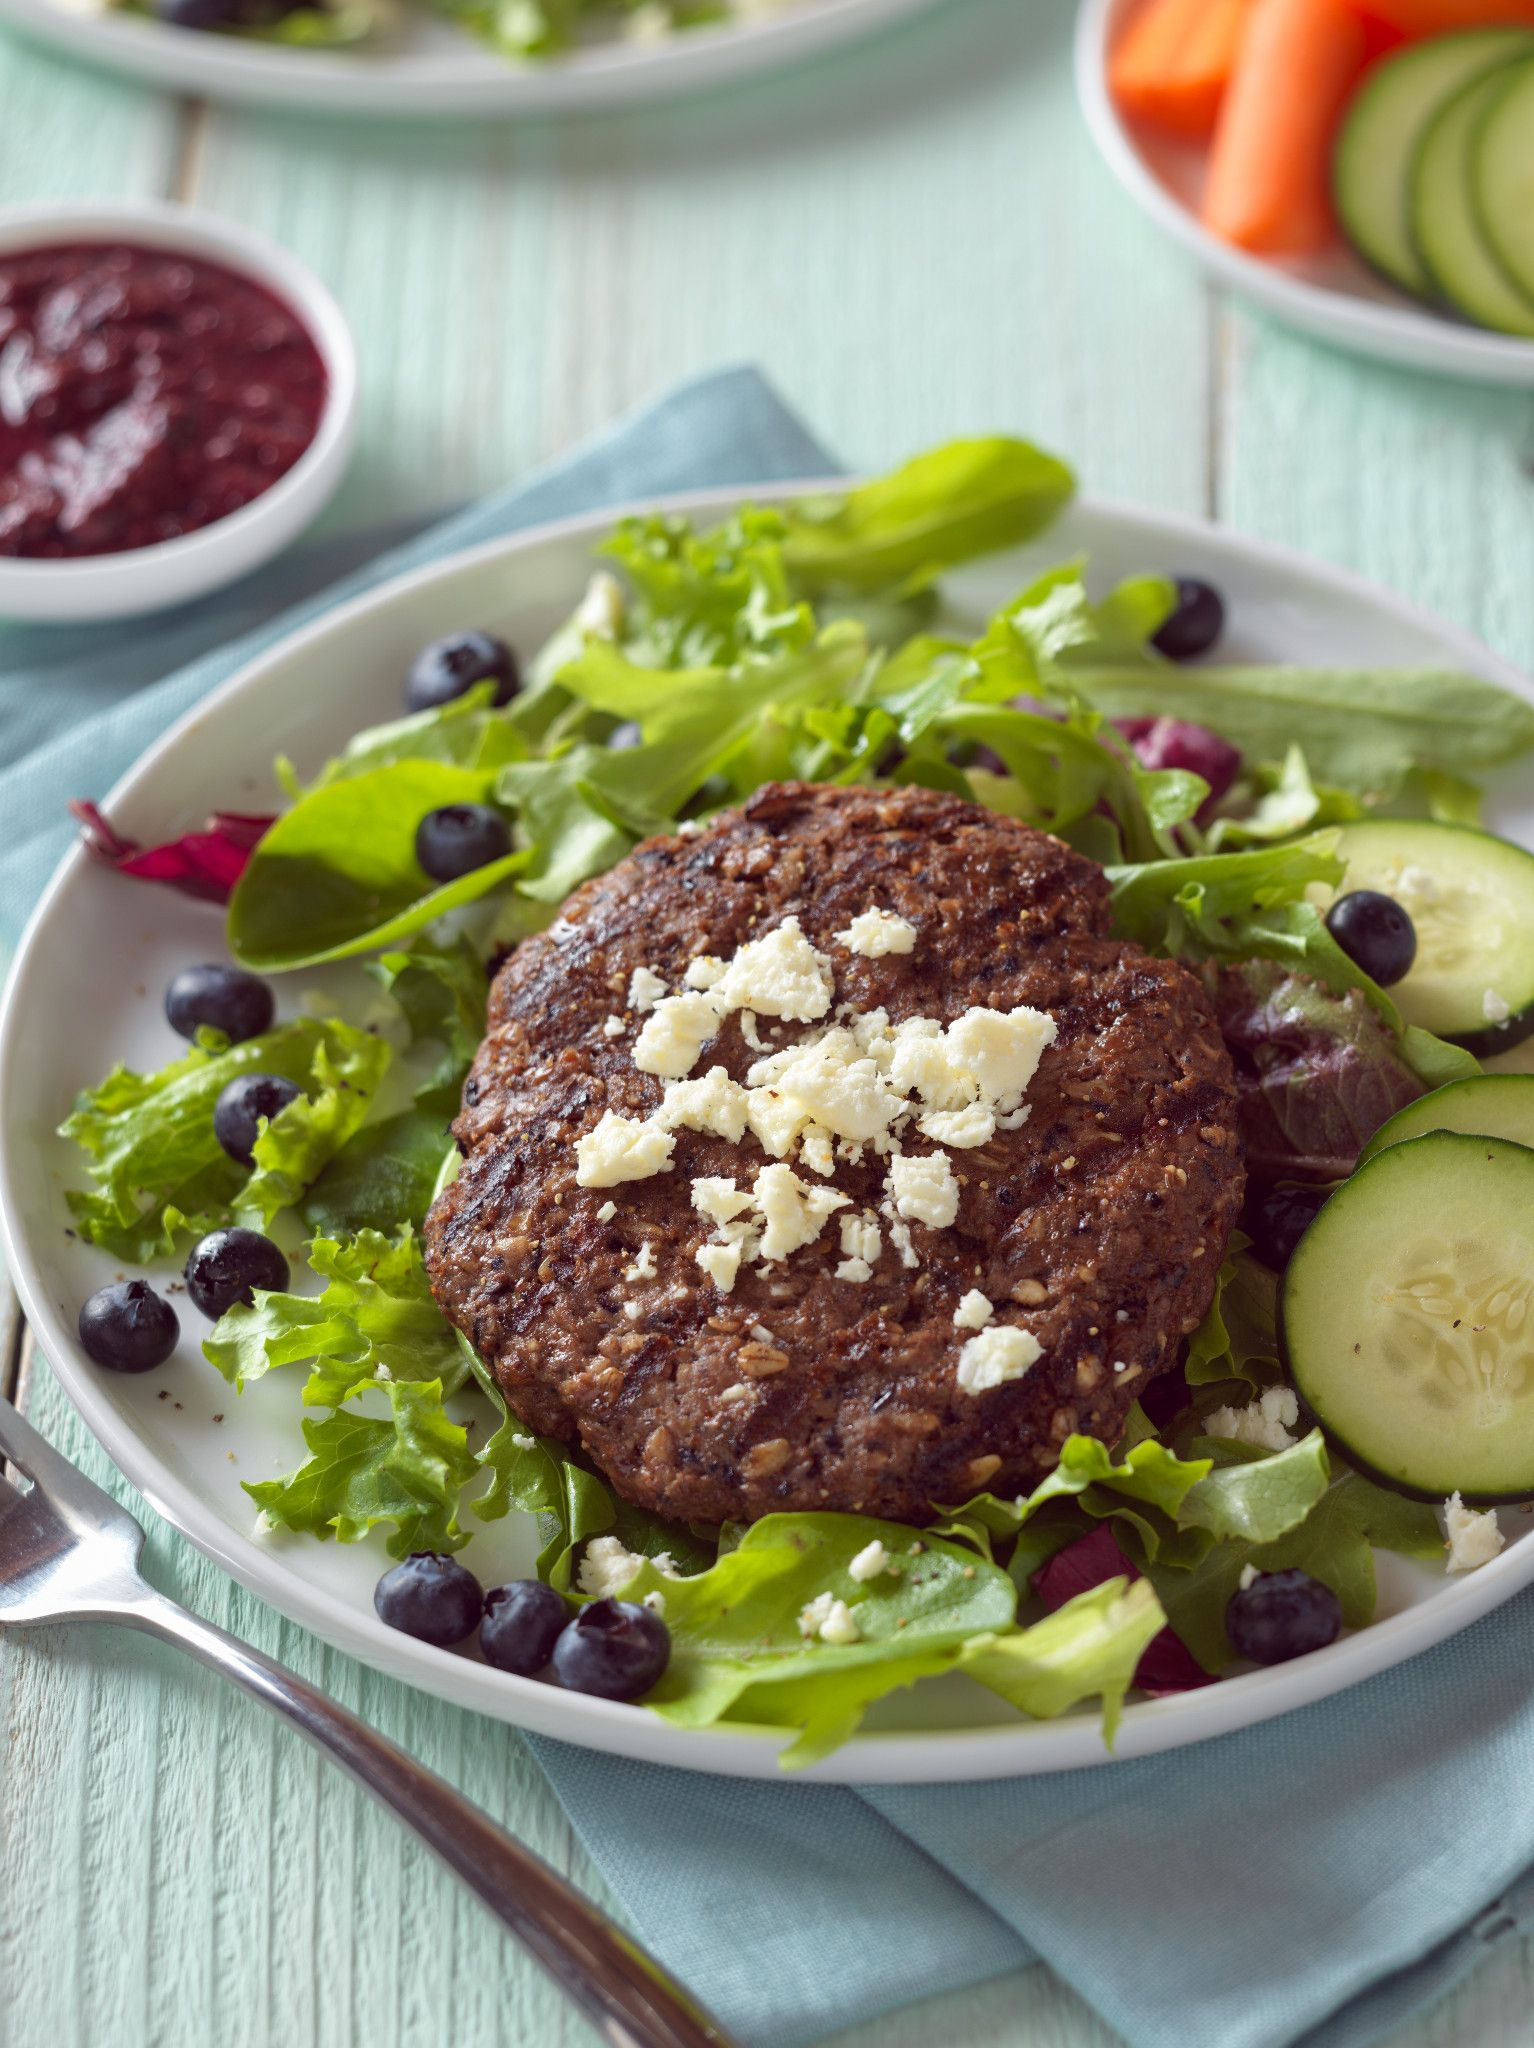 Beef, Blueberry & Flax Burgers